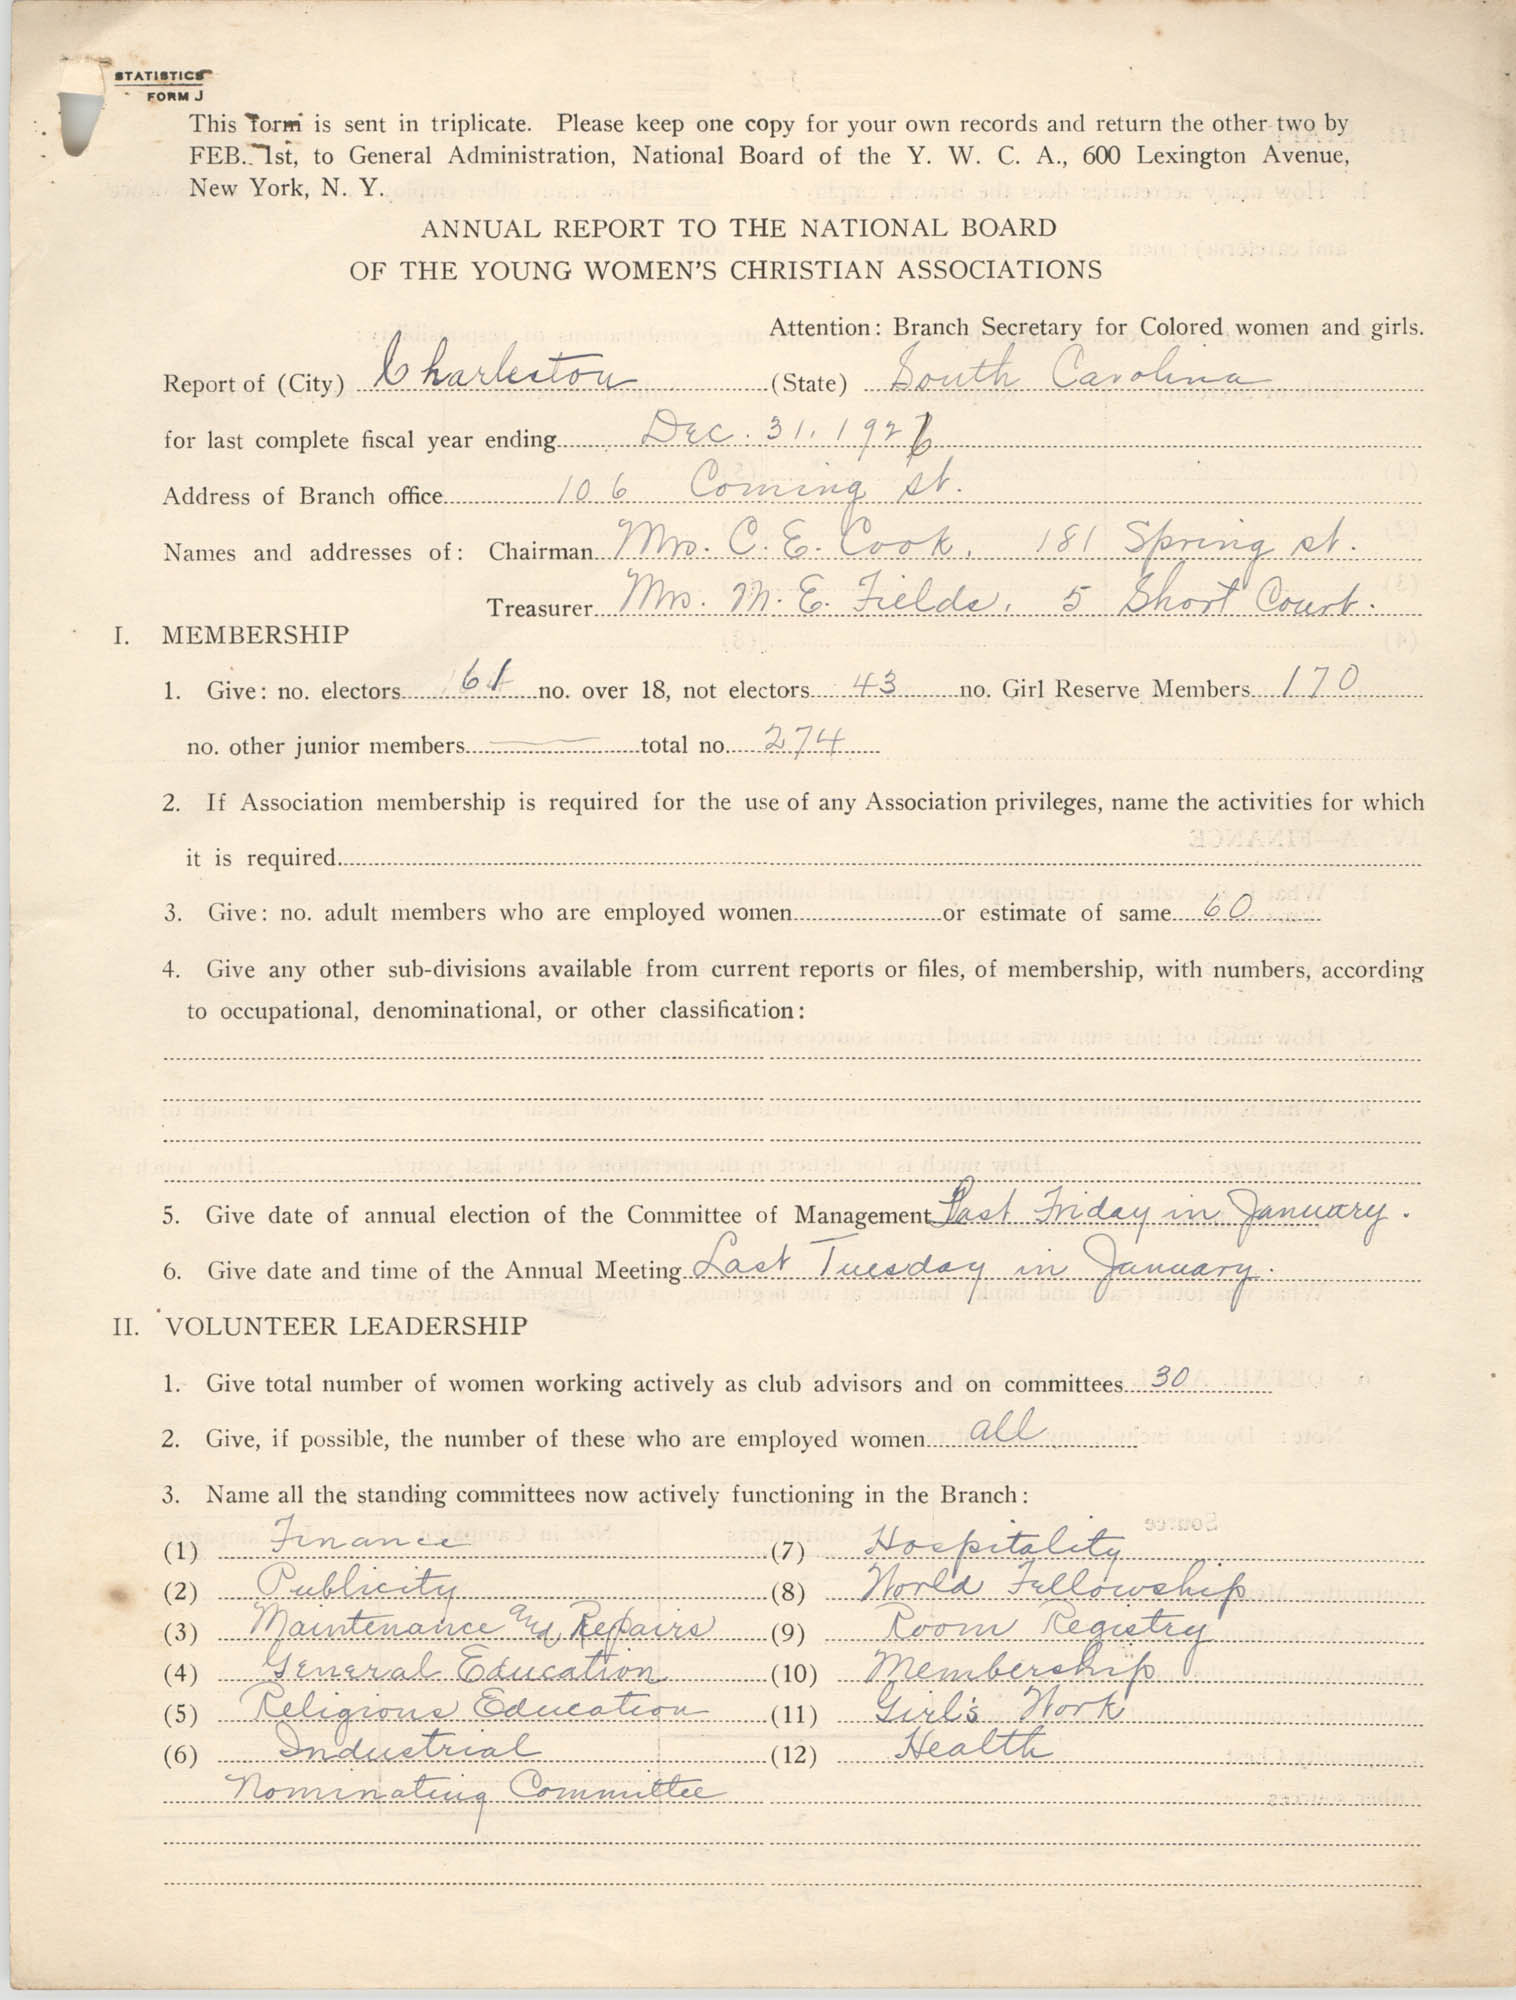 Annual Report to the National Board of the Young Women's Christian Associations, December 1926